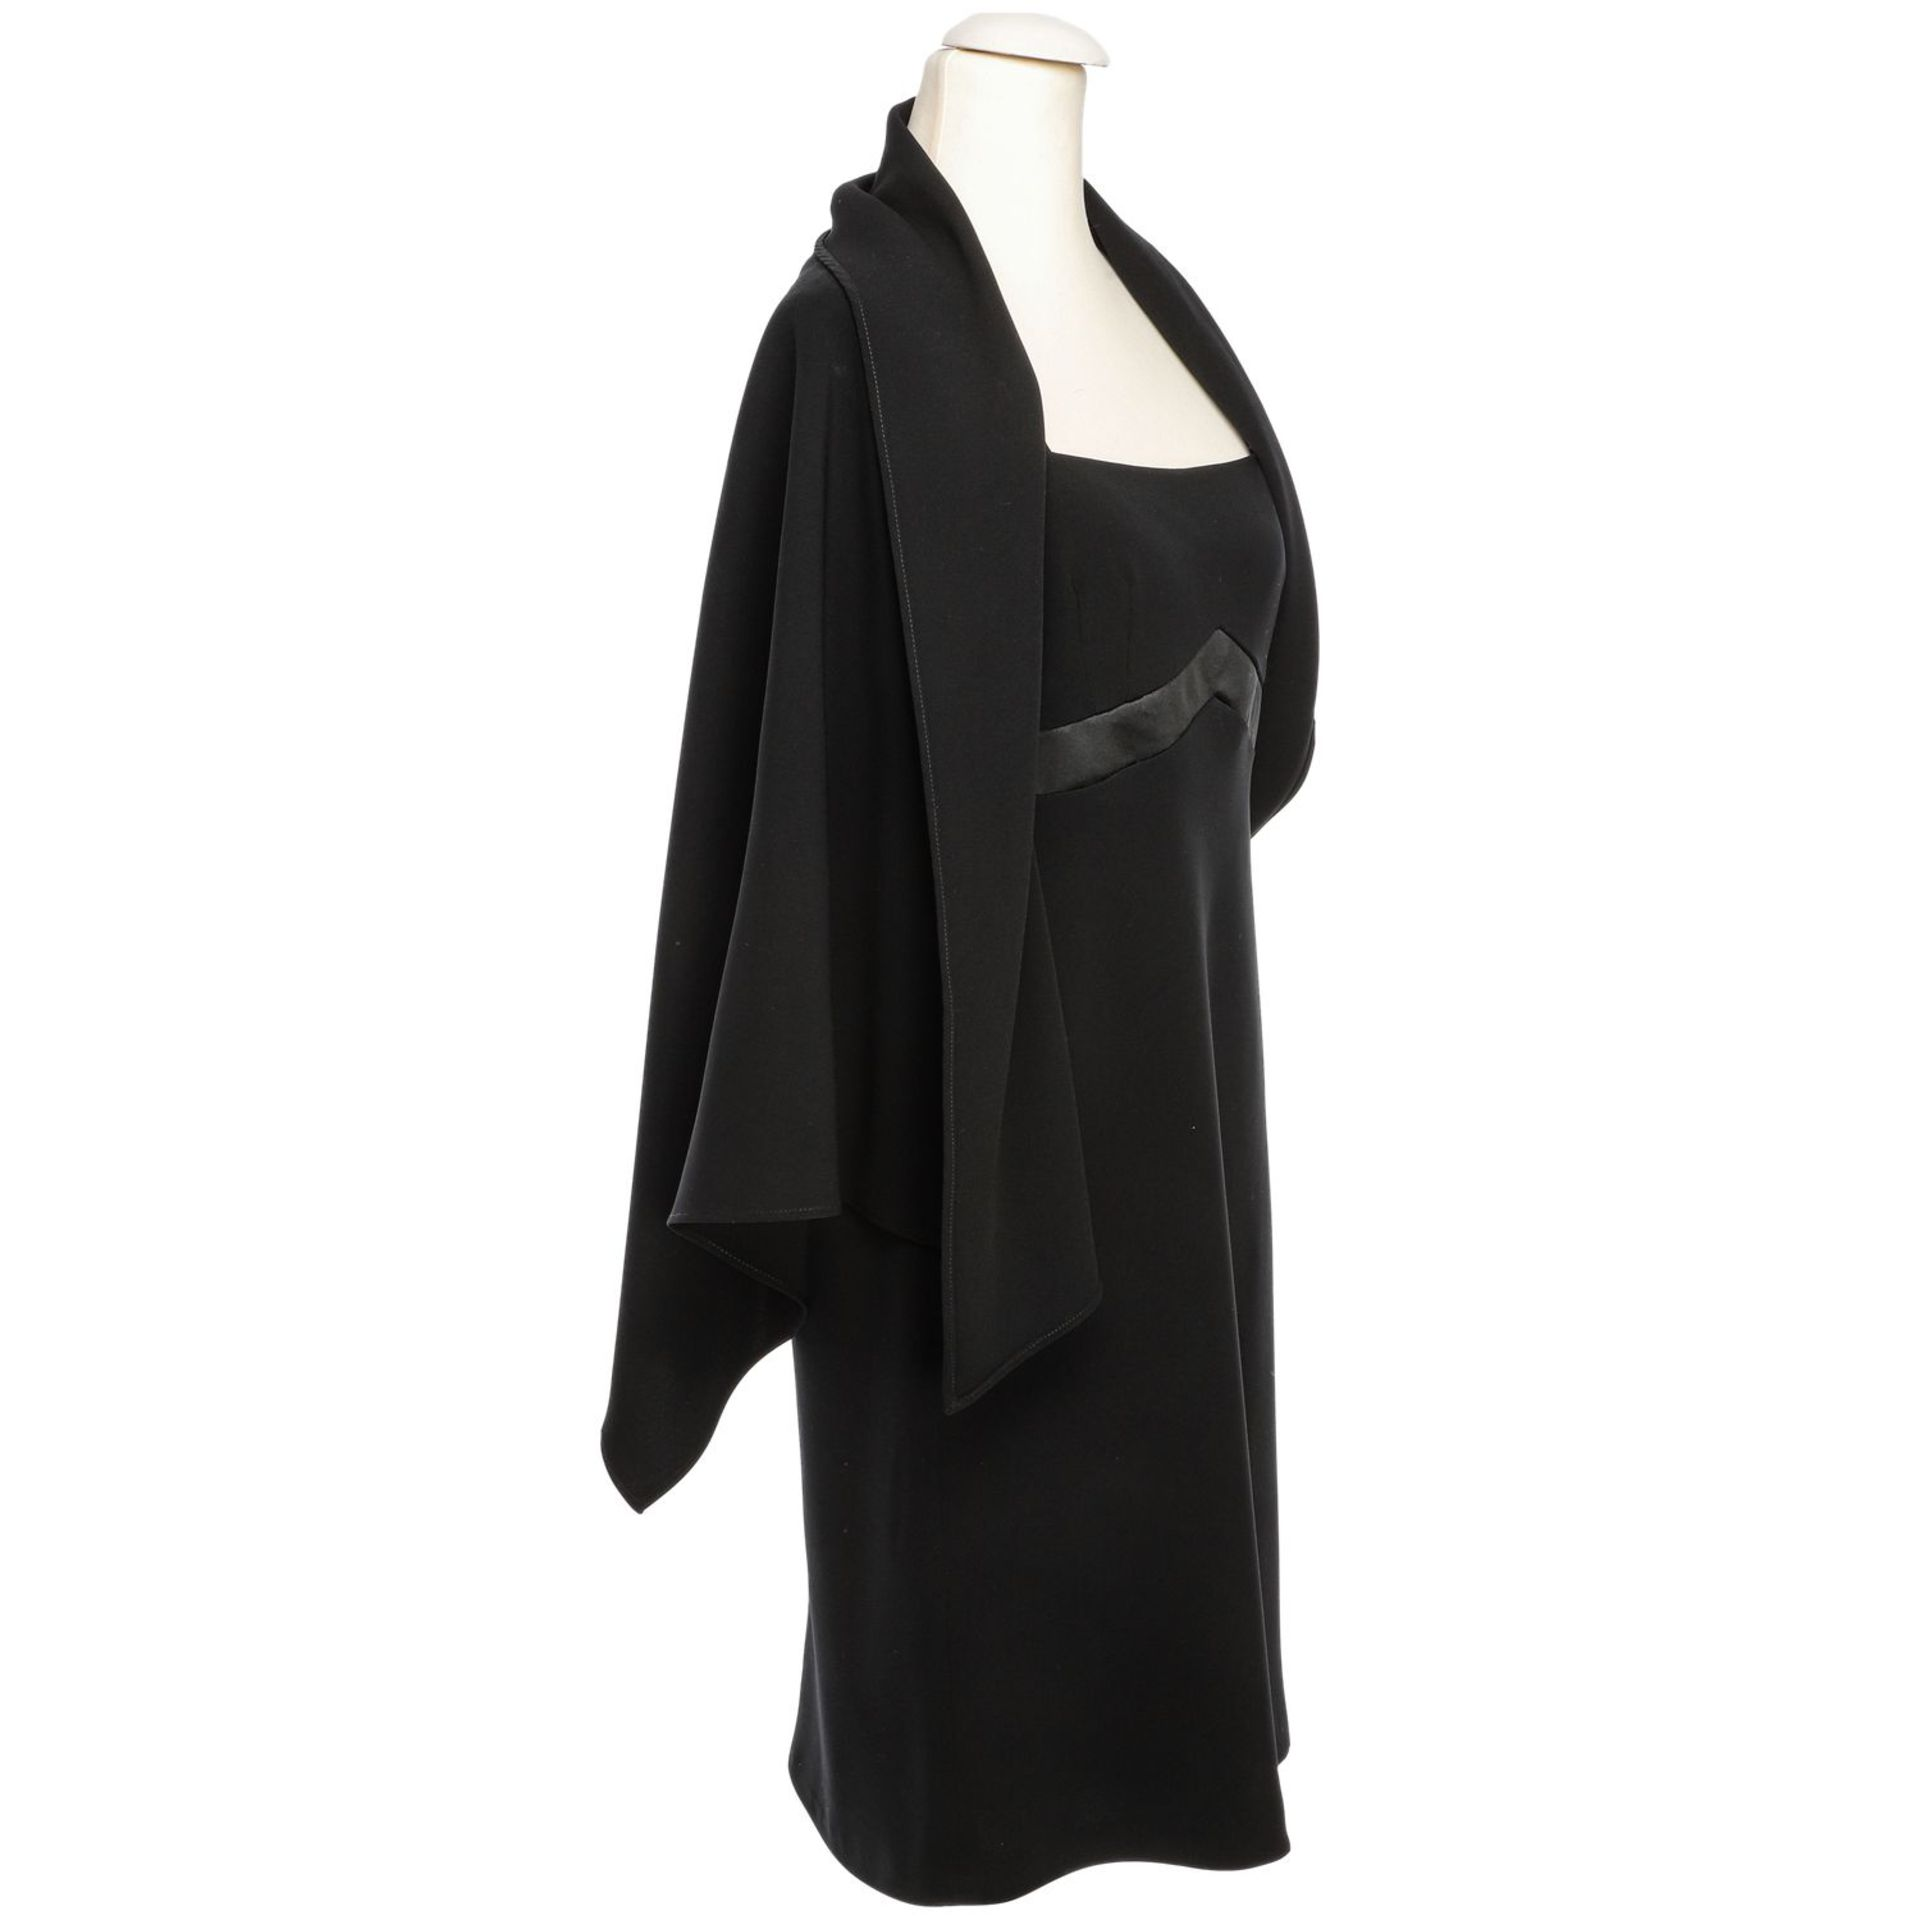 MOSCHINO COUTURE VINTAGE Kleid, Gr. 40. - Image 2 of 4